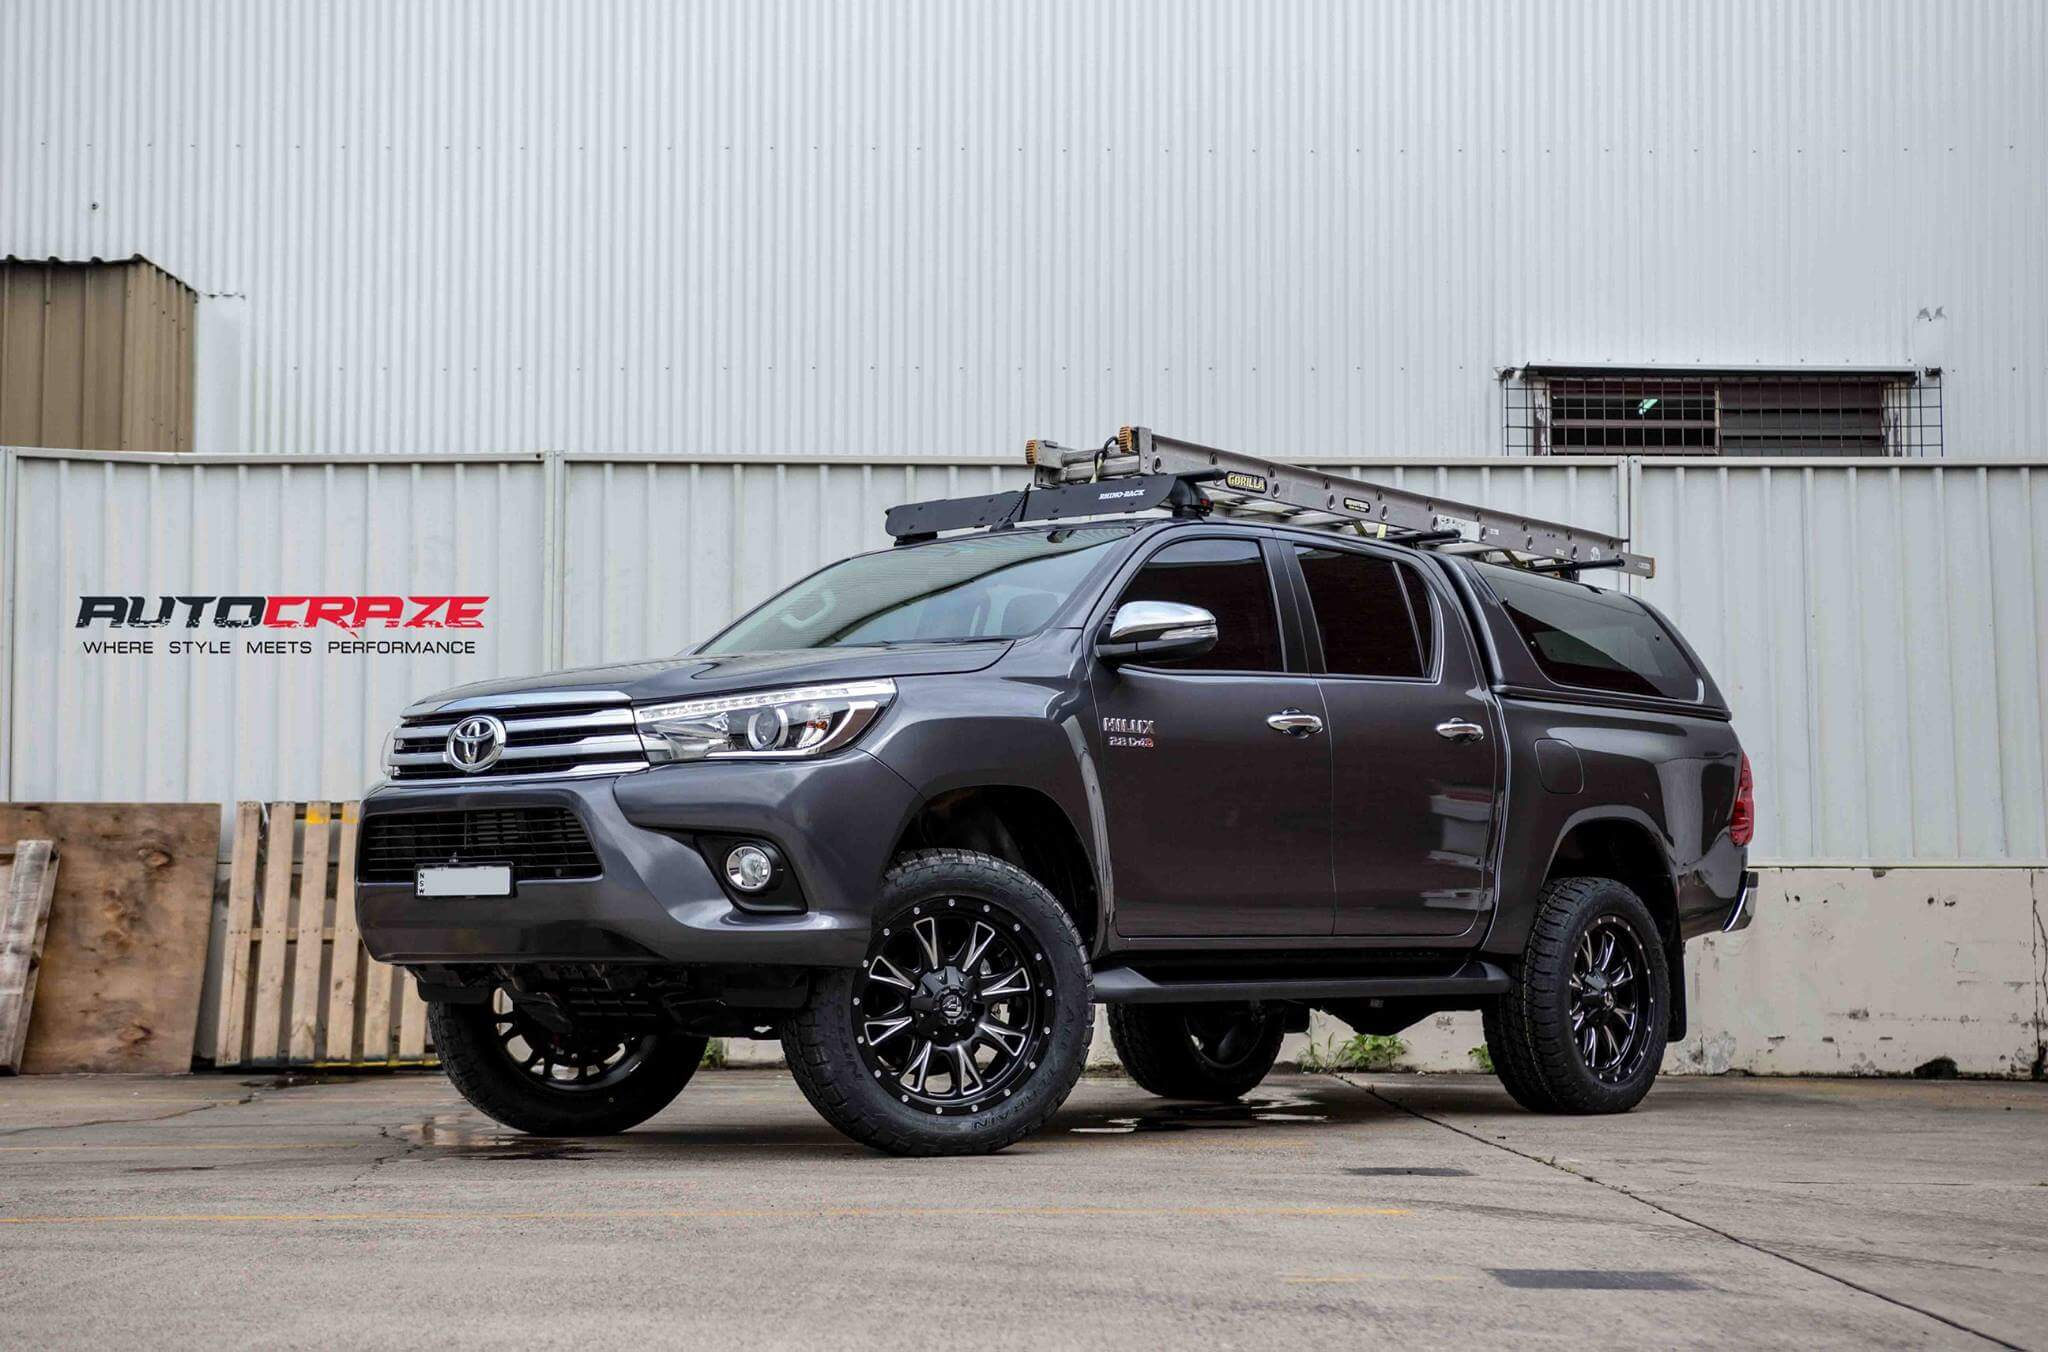 4wd Rims For Hilux Quality 4x4 Alloy Wheels To Suit